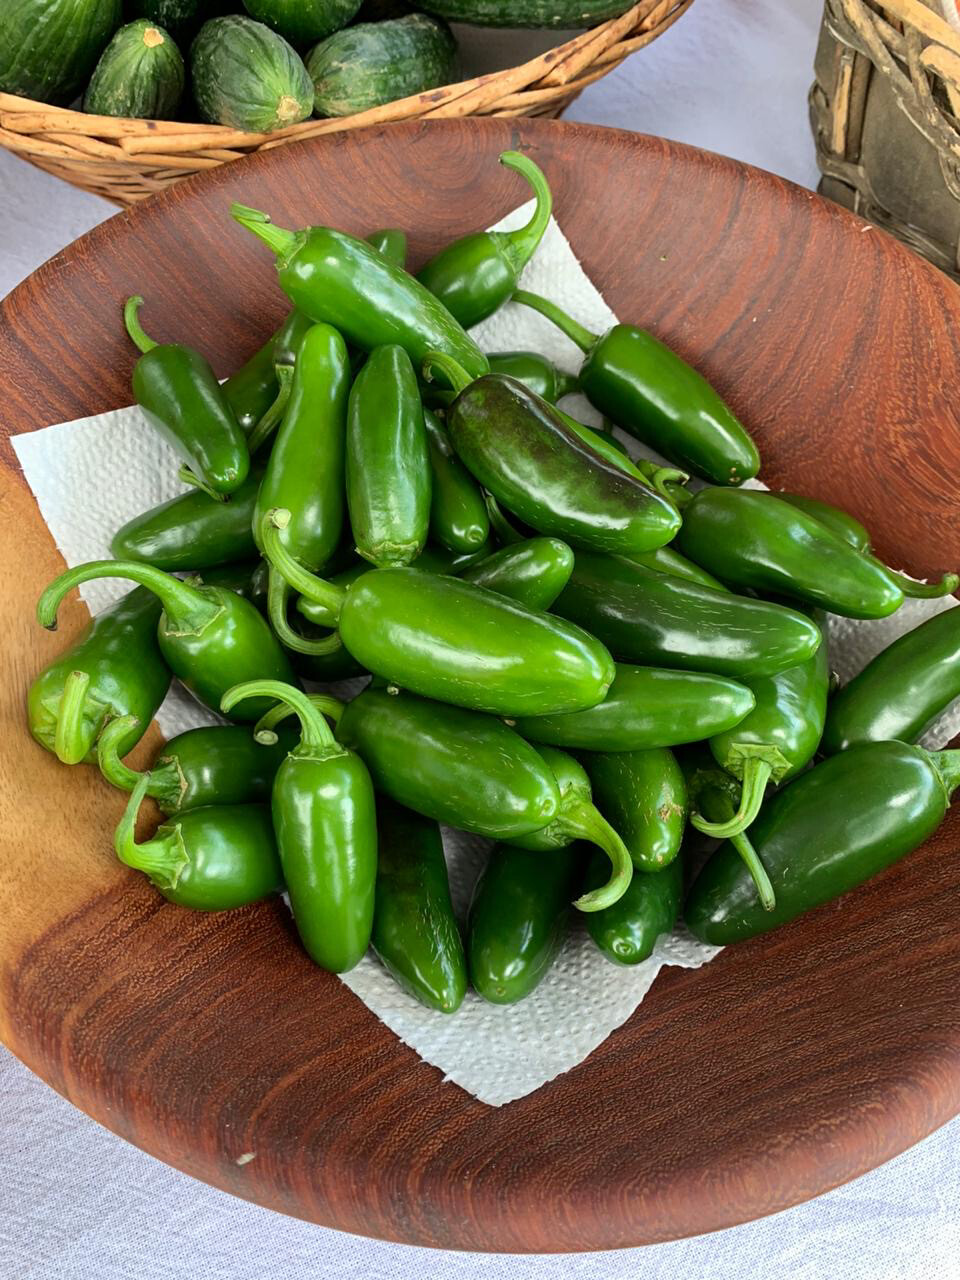 Jalapenos 500g (Red and Green)